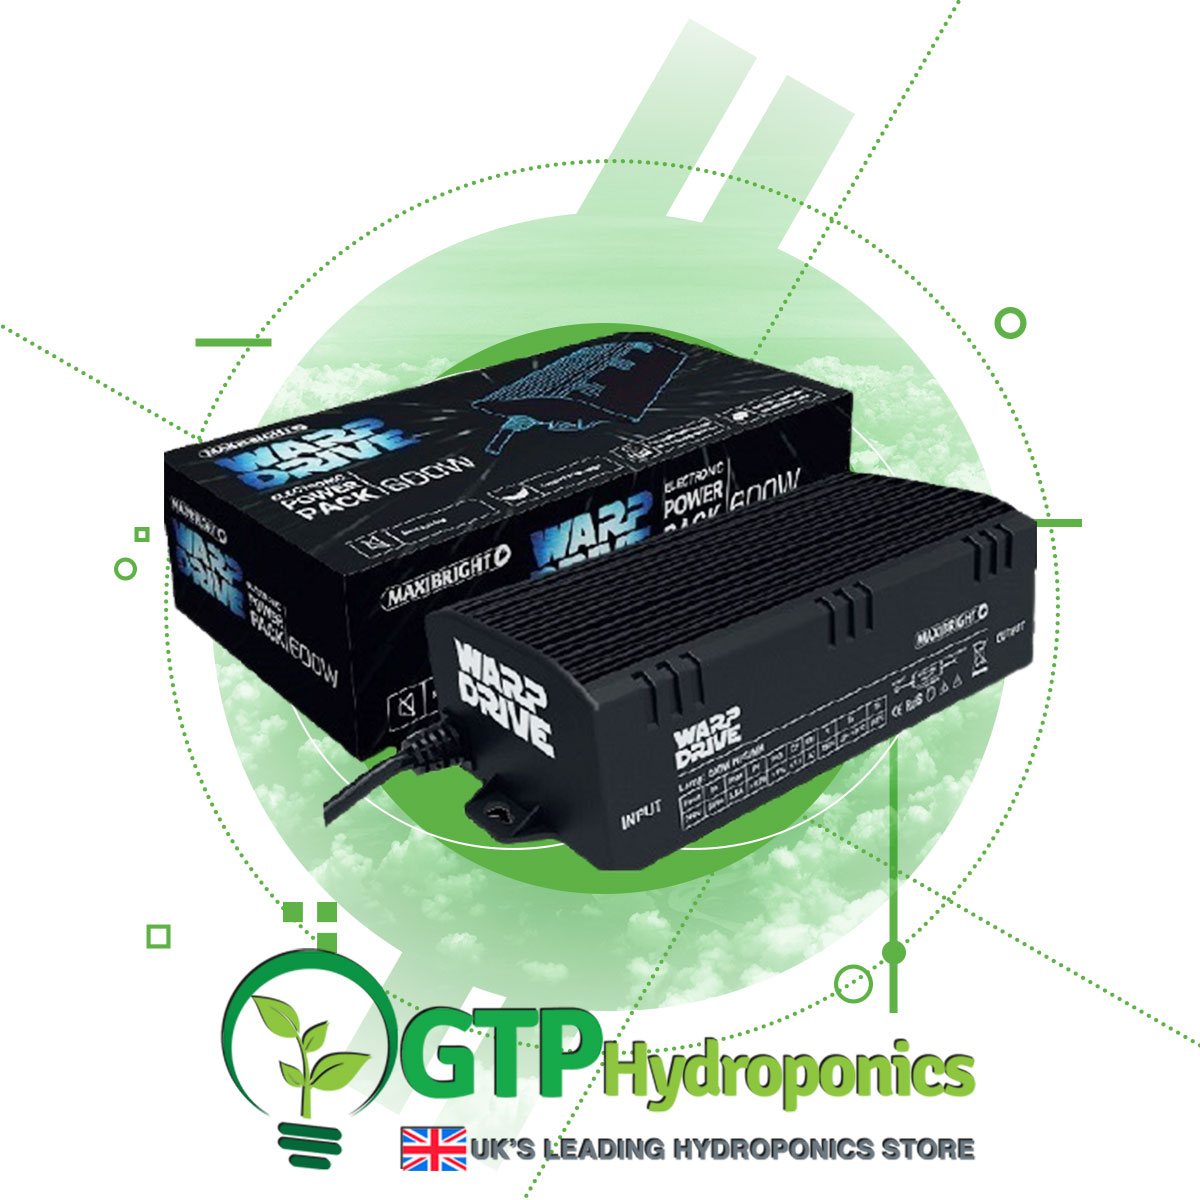 Maxibright Warp Drive Pro Variable Power Pack Ballast 600w product